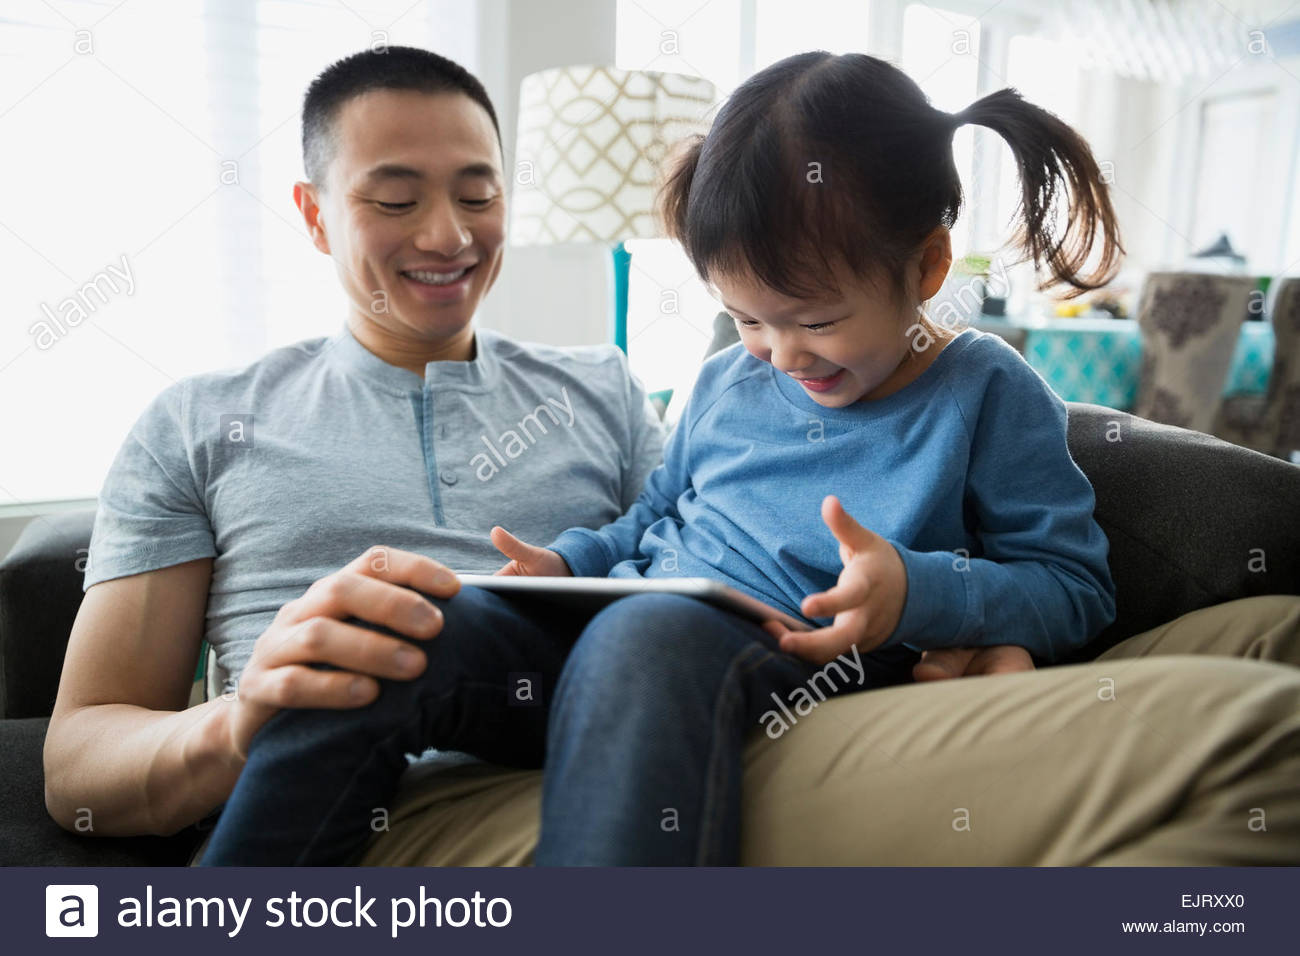 Father and daughter using digital tablet - Stock Image